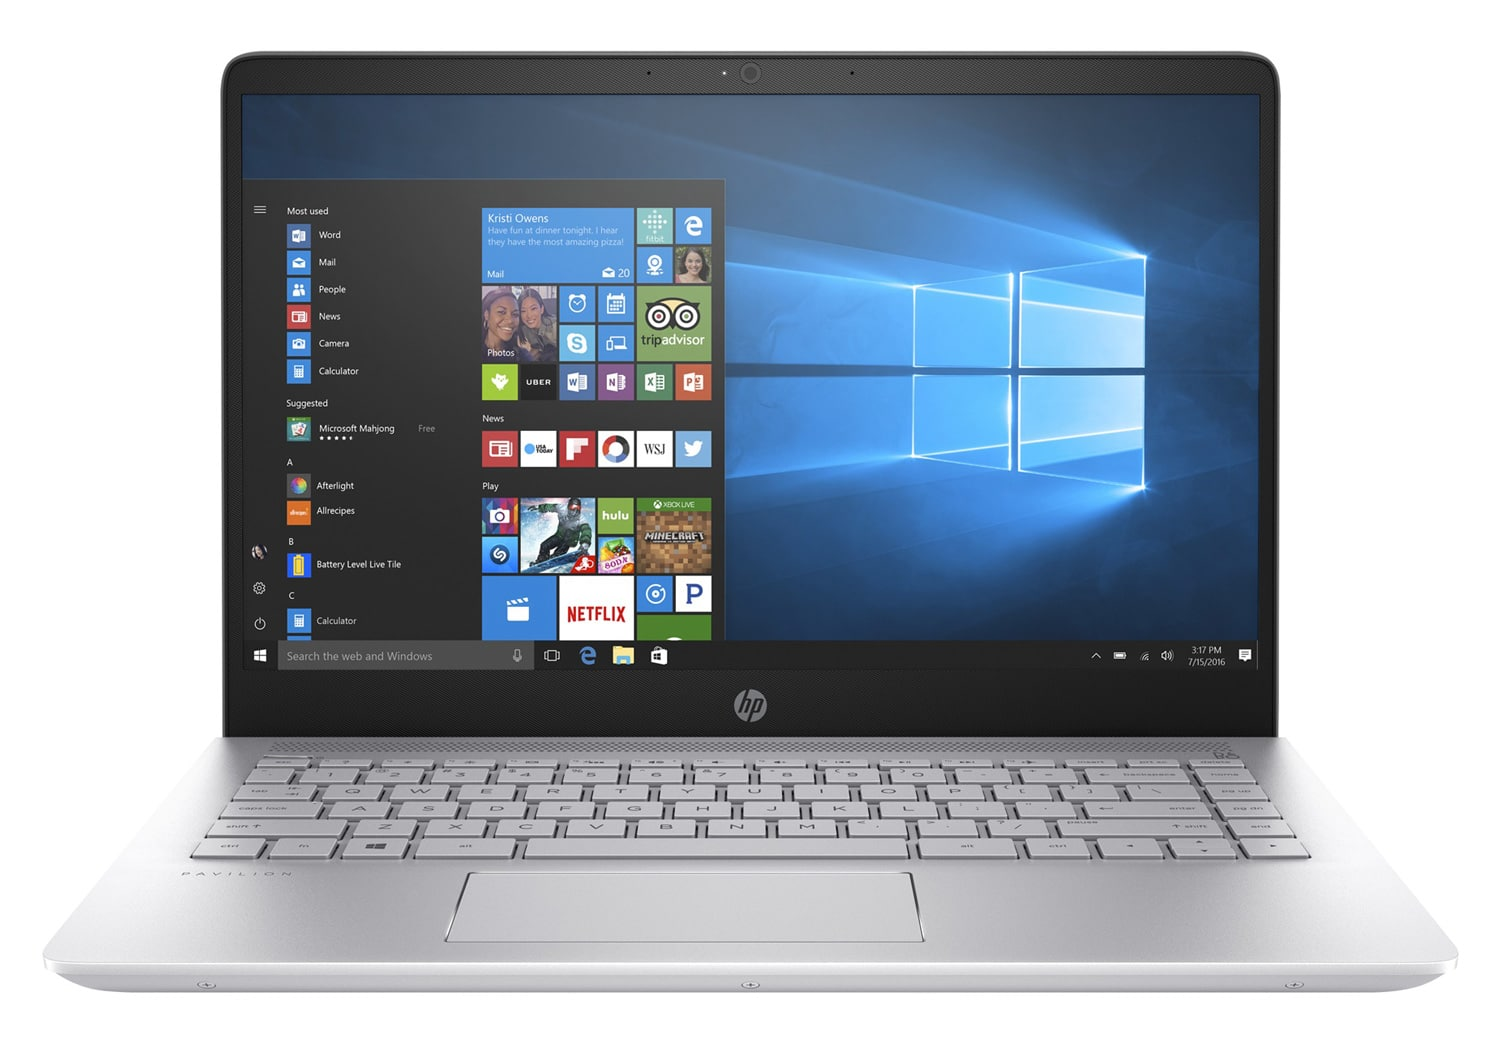 HP Pavilion 14-bk007nf à 699€, Ultrabook 14 pouces Full IPS SSD 256+1 To Kaby